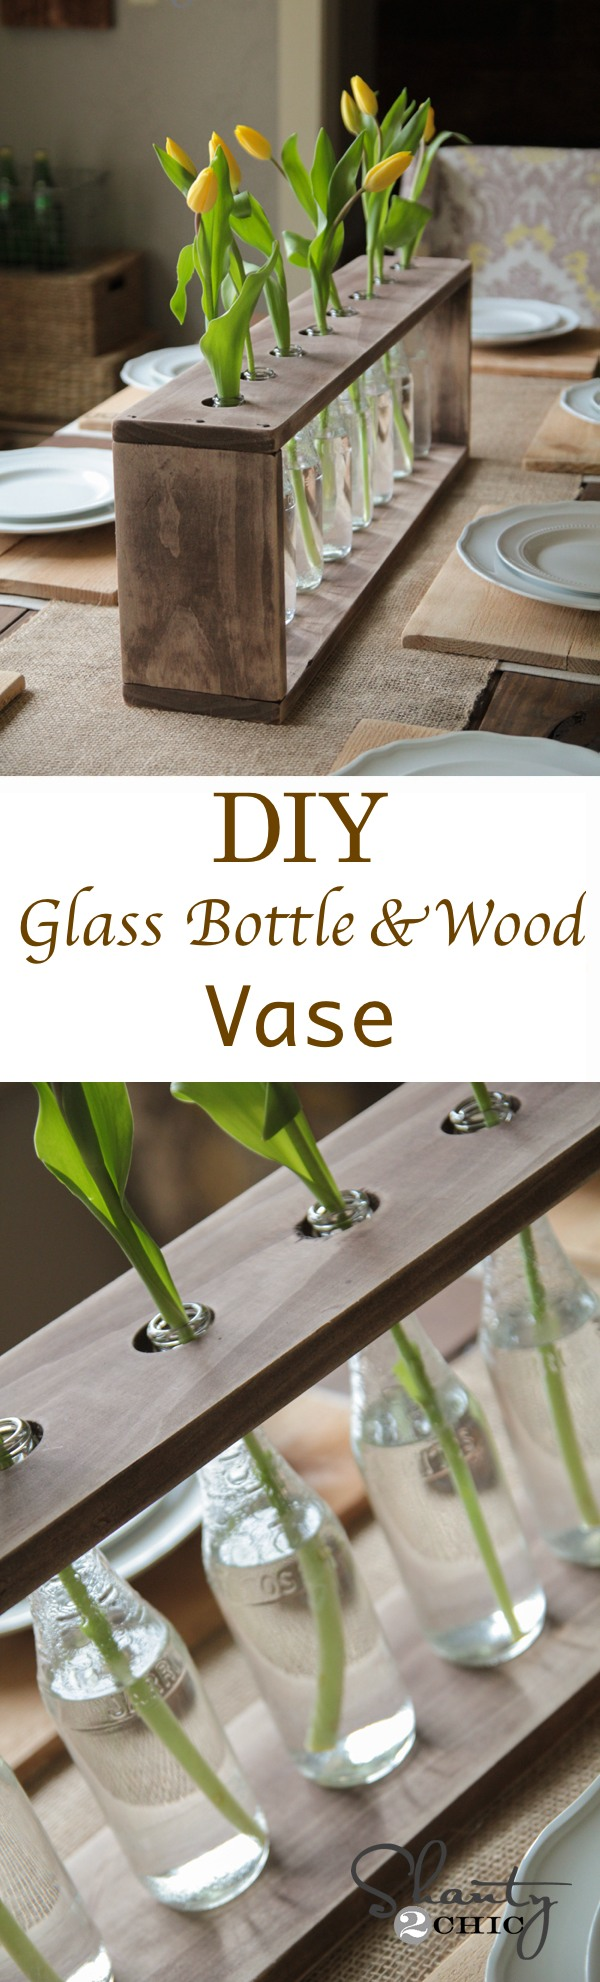 DIY Glass Bottle & Wood Vase